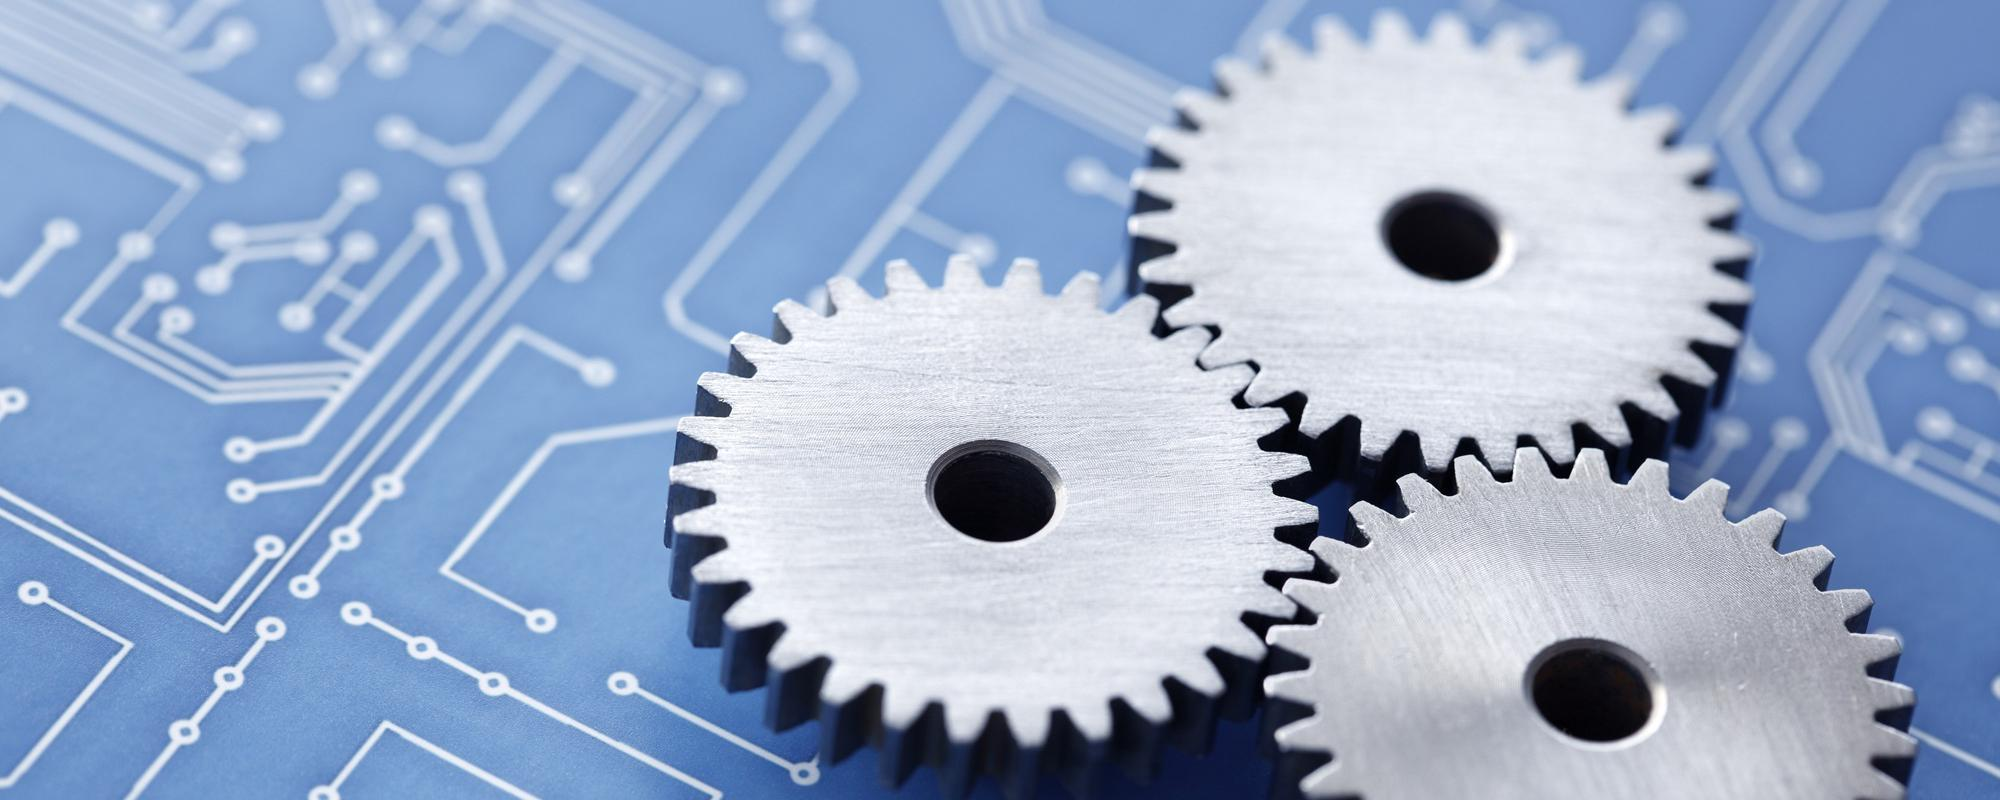 Cogs on electrical board